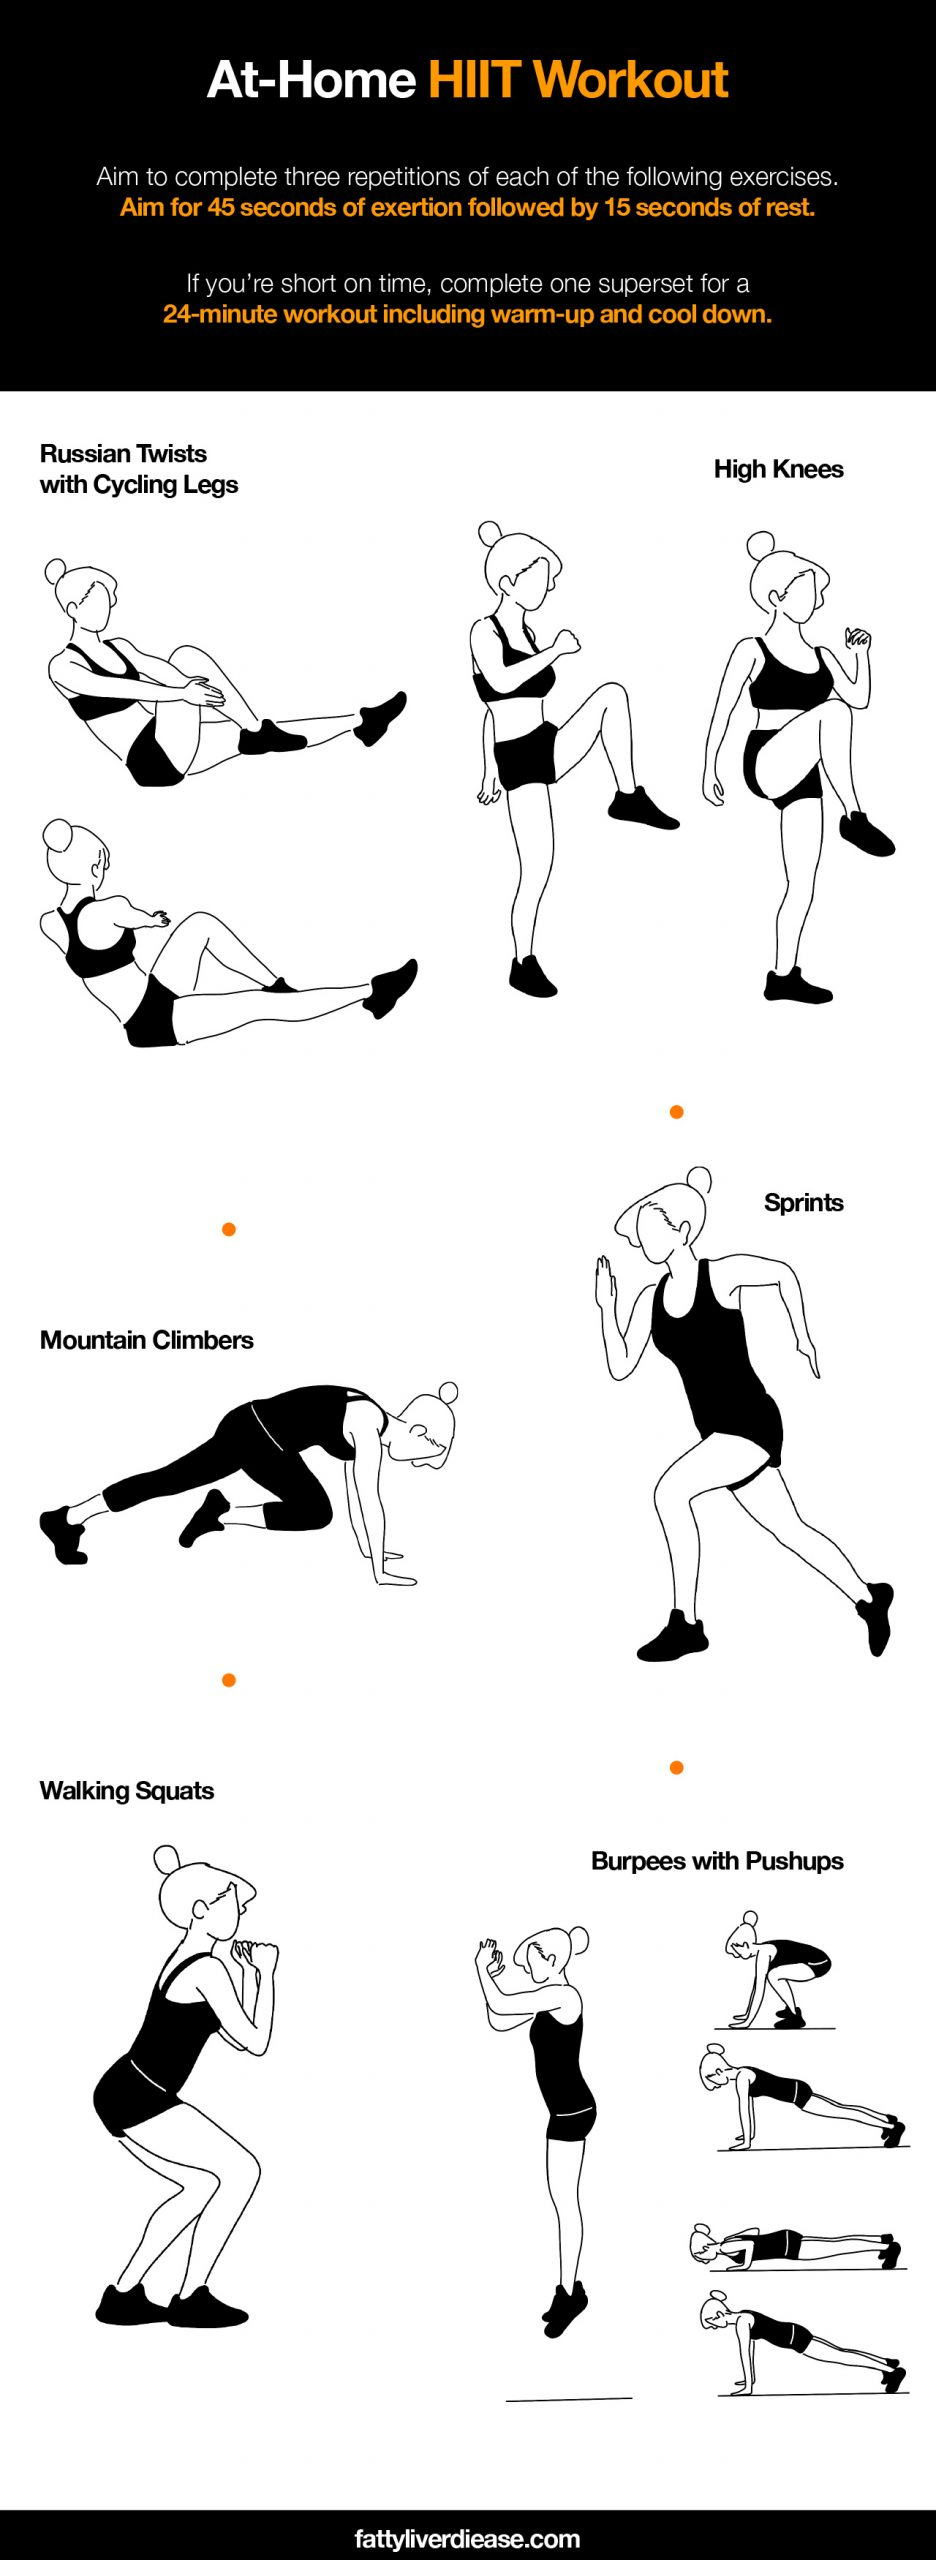 At-Home HIIT Workout